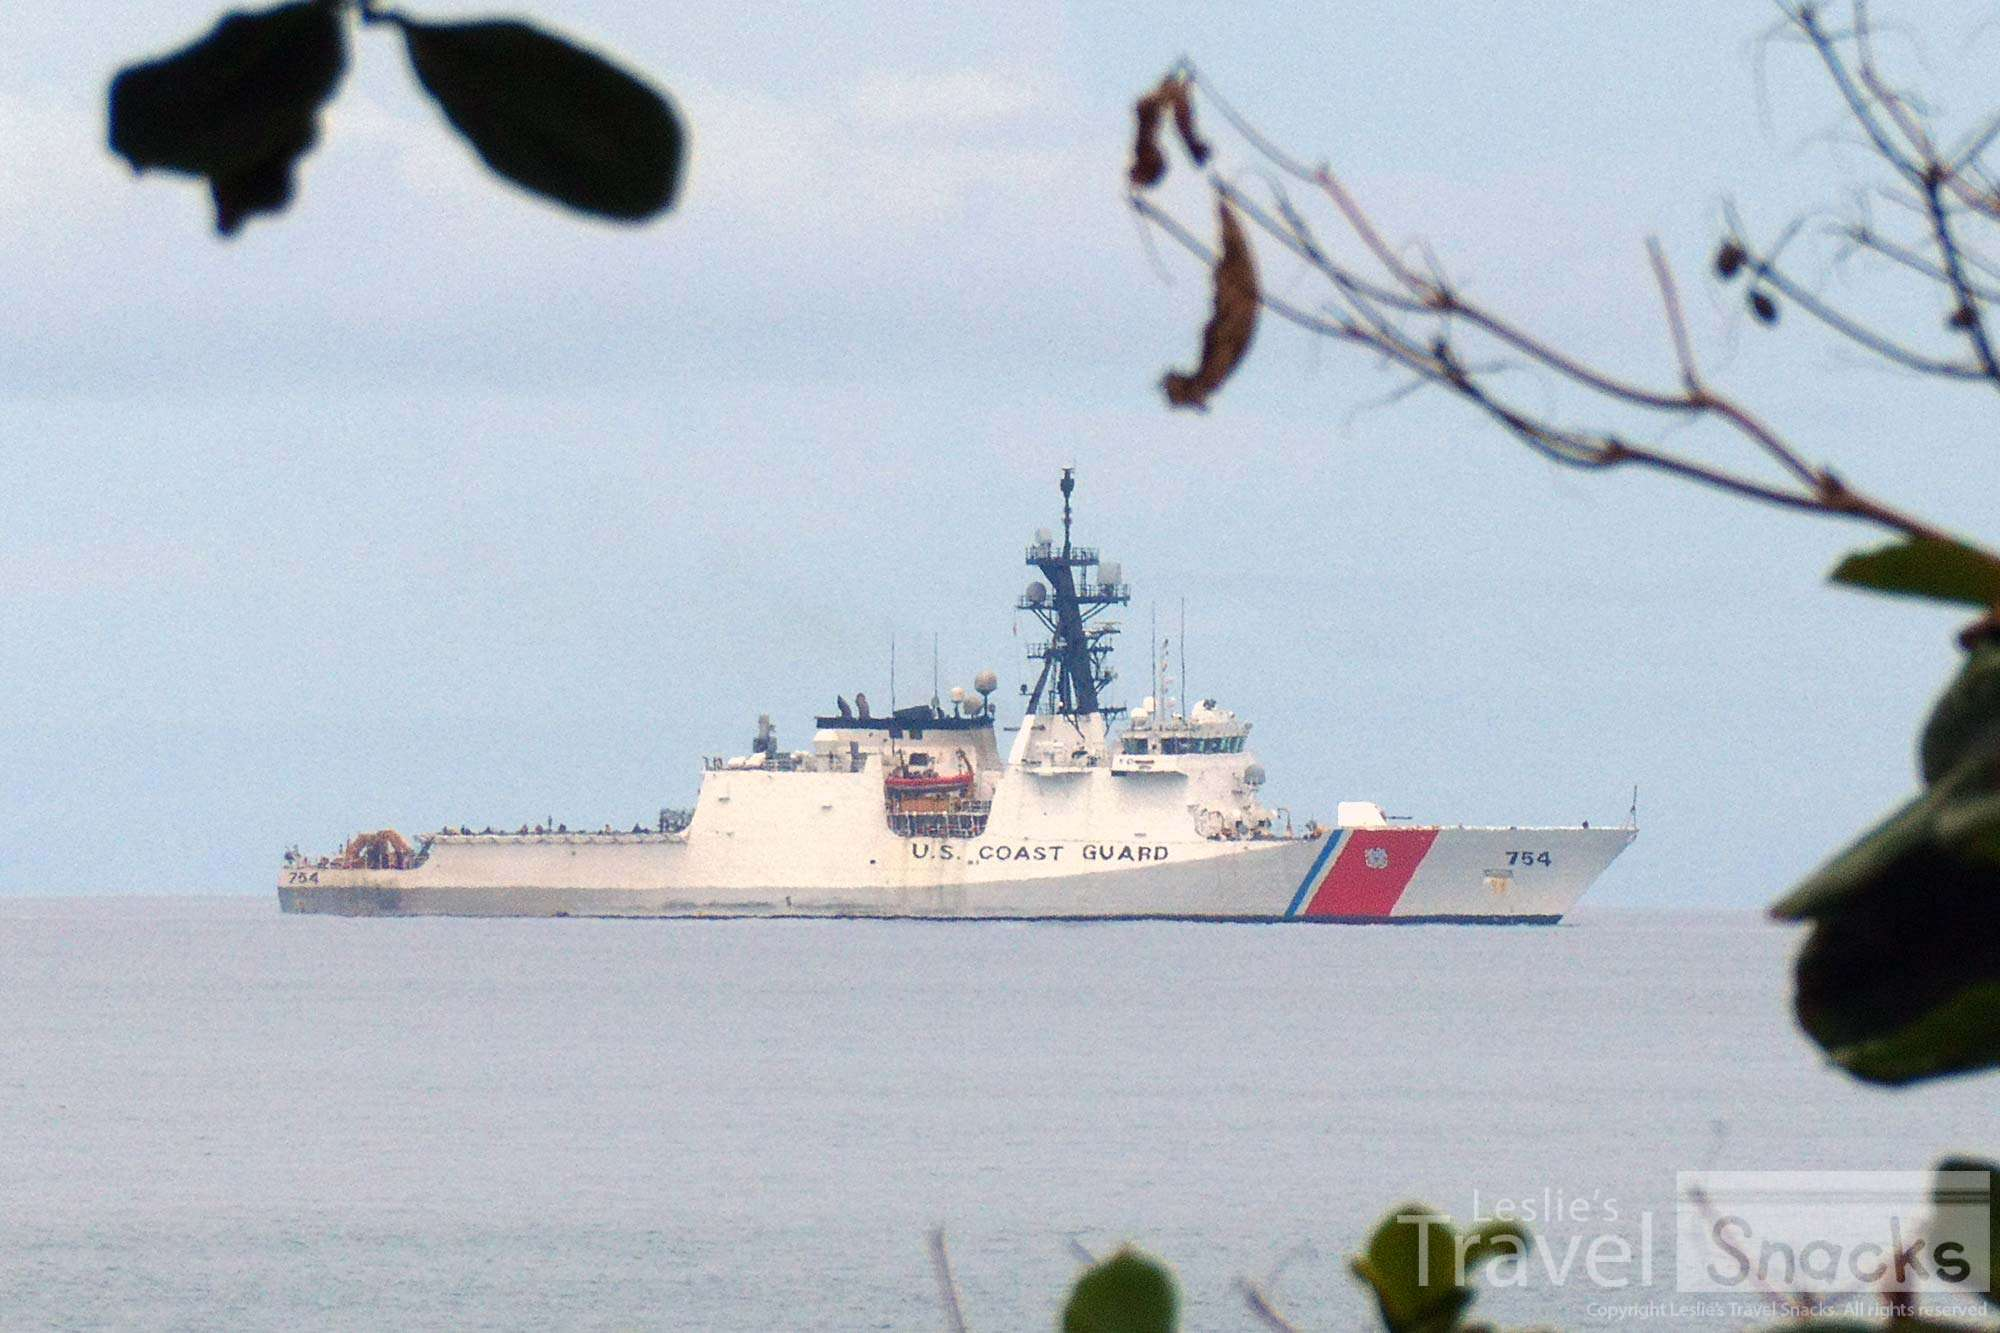 U.S. Coast Guard ship in the Gulfo Dulce.